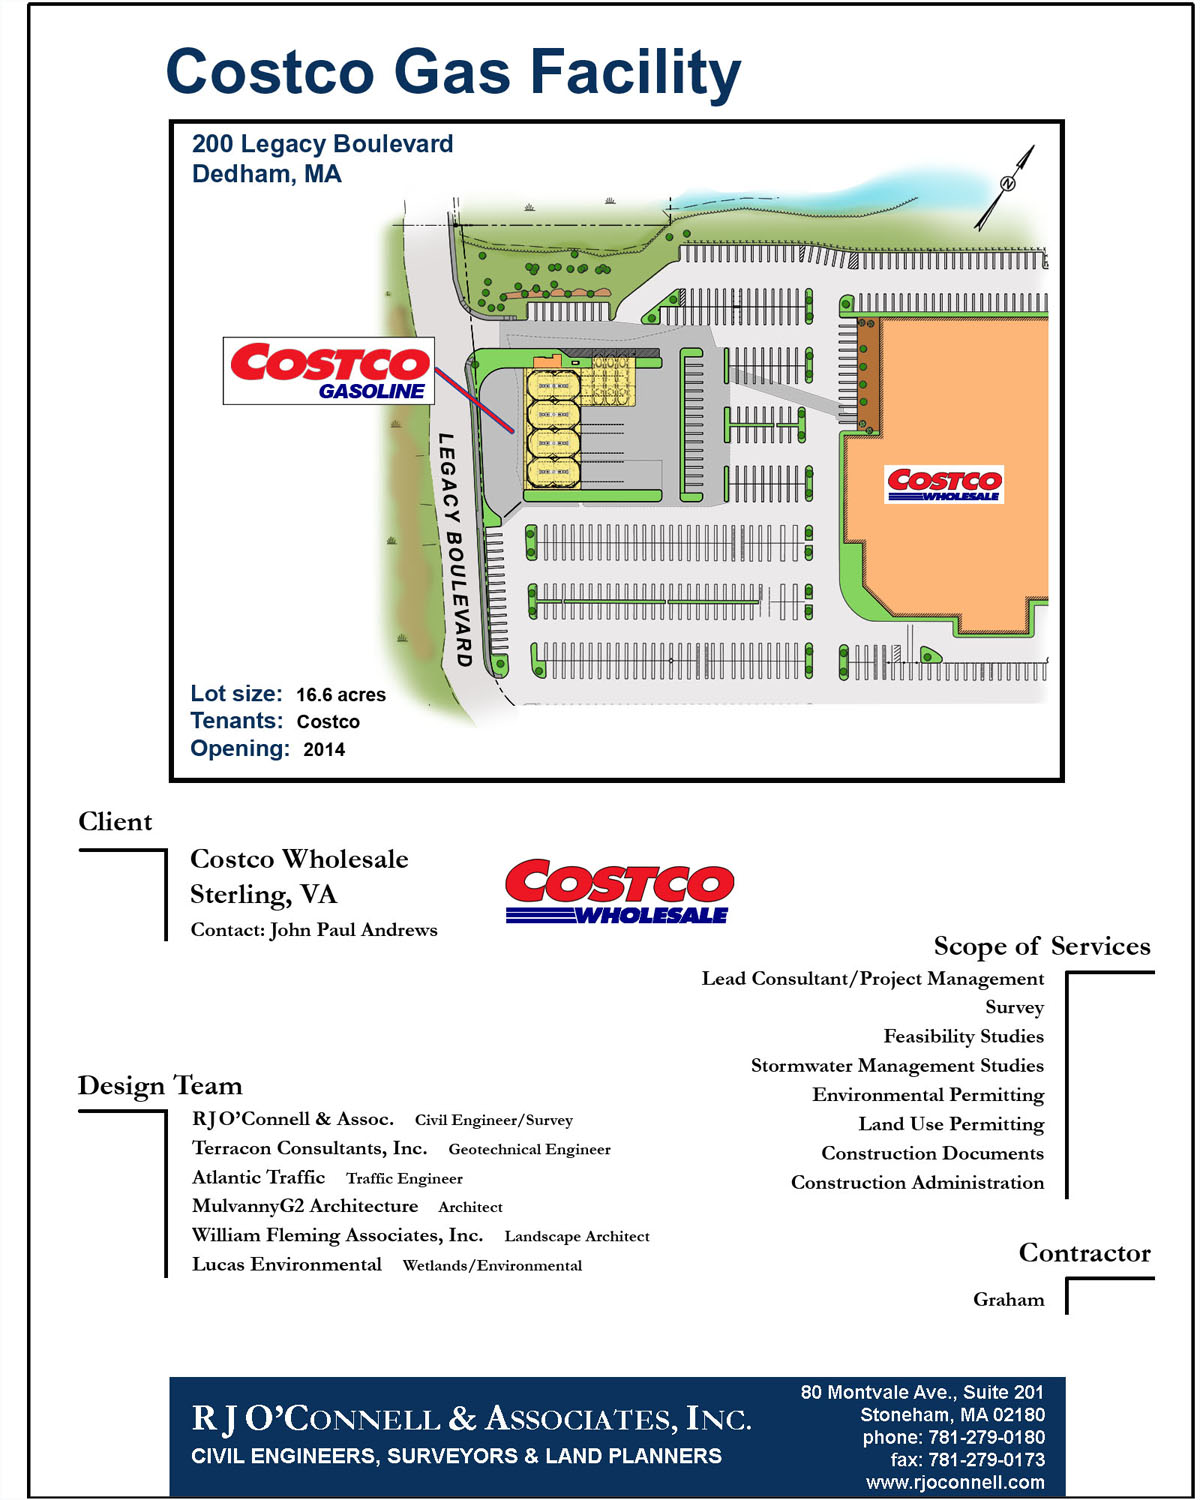 Dedham Ma Costco Gas Facility Rjo Connell Associates Inc